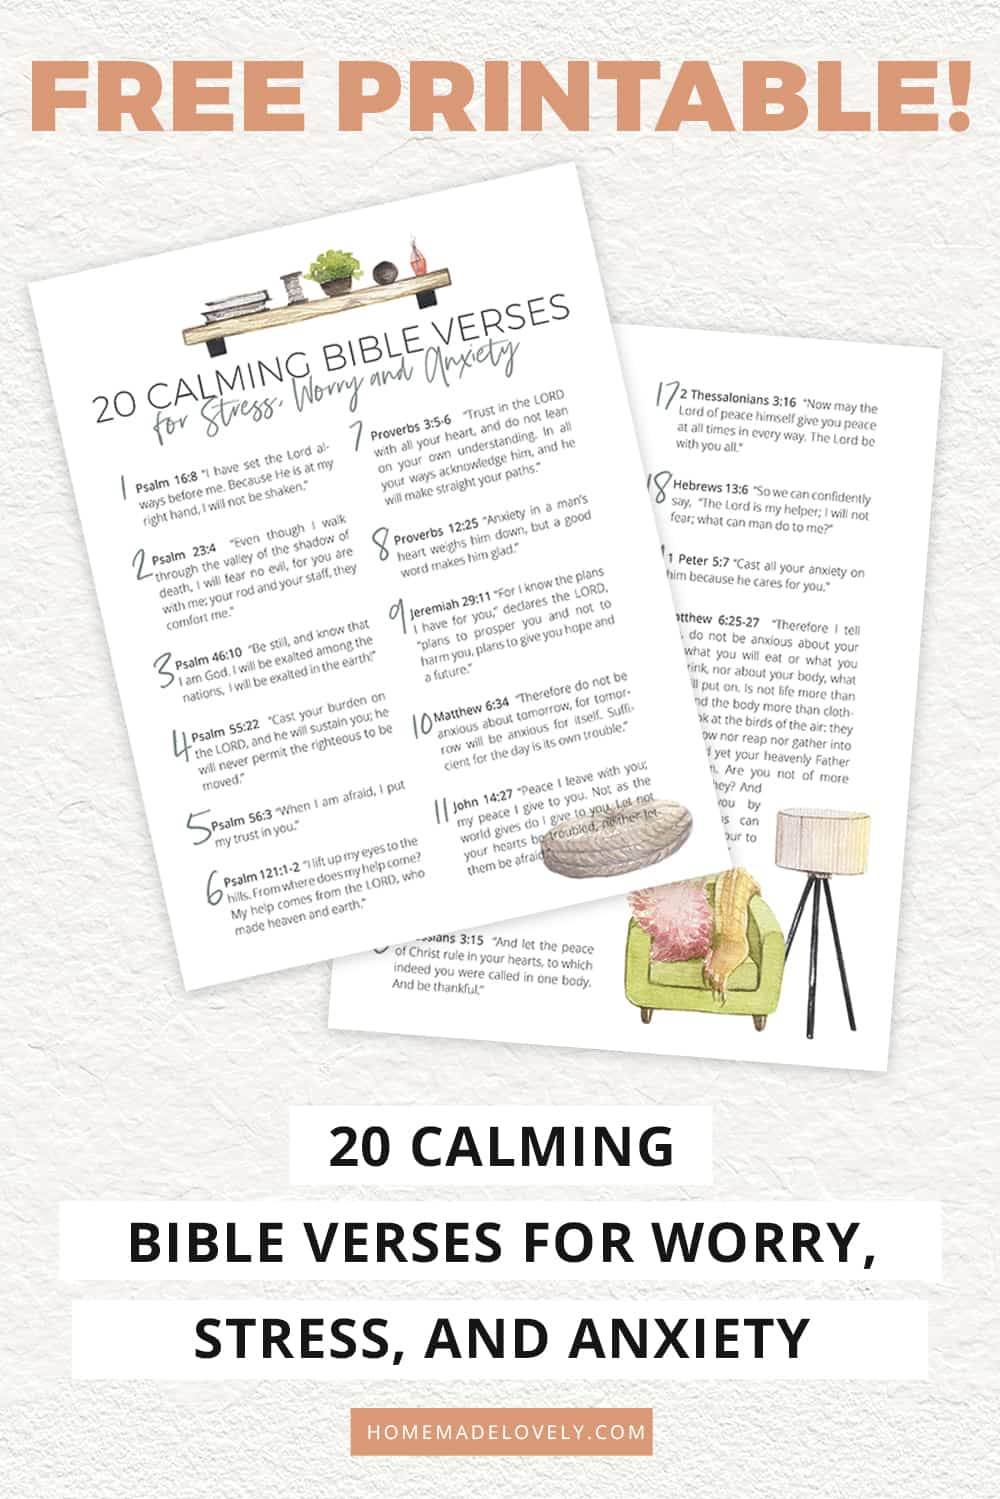 printable calming bible verses with text overlay description